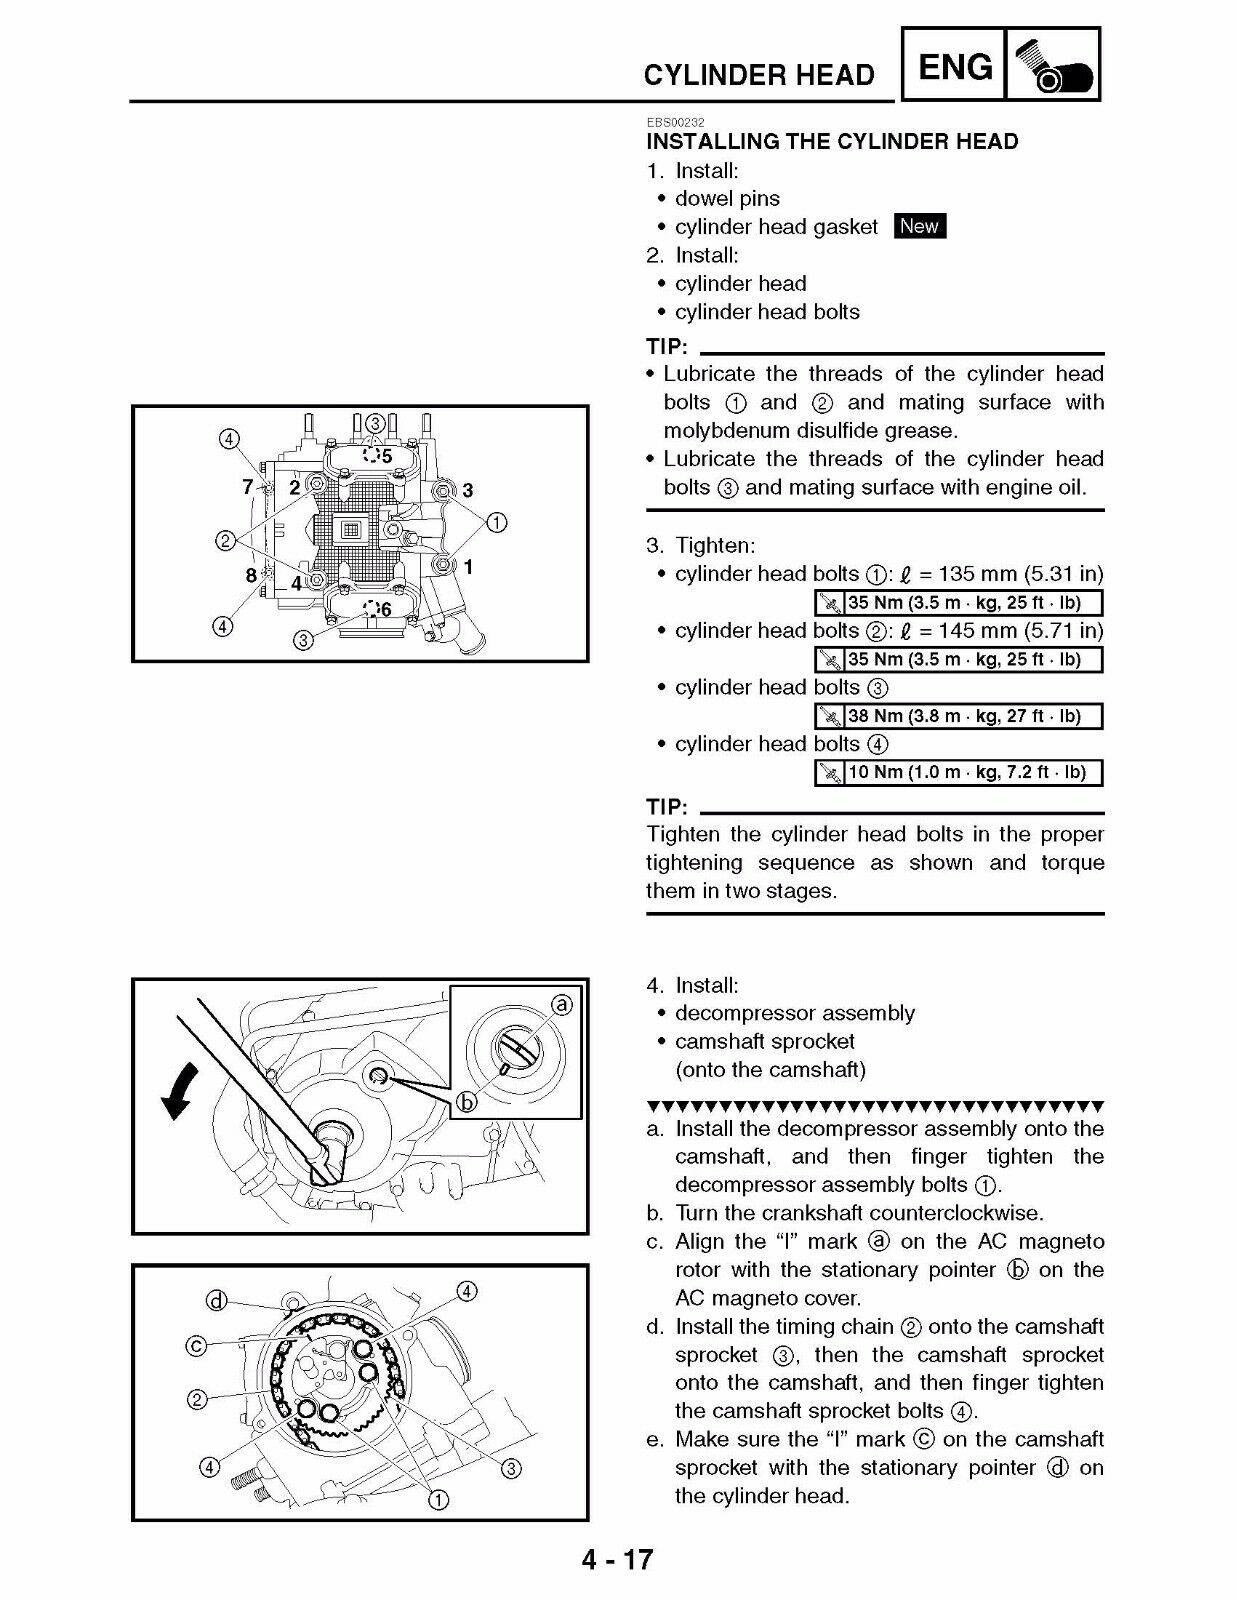 2008 Yamaha Rhino Wiring Diagram Simple Guide About Ford E Headlight Diagrams Schematic Fuse Block